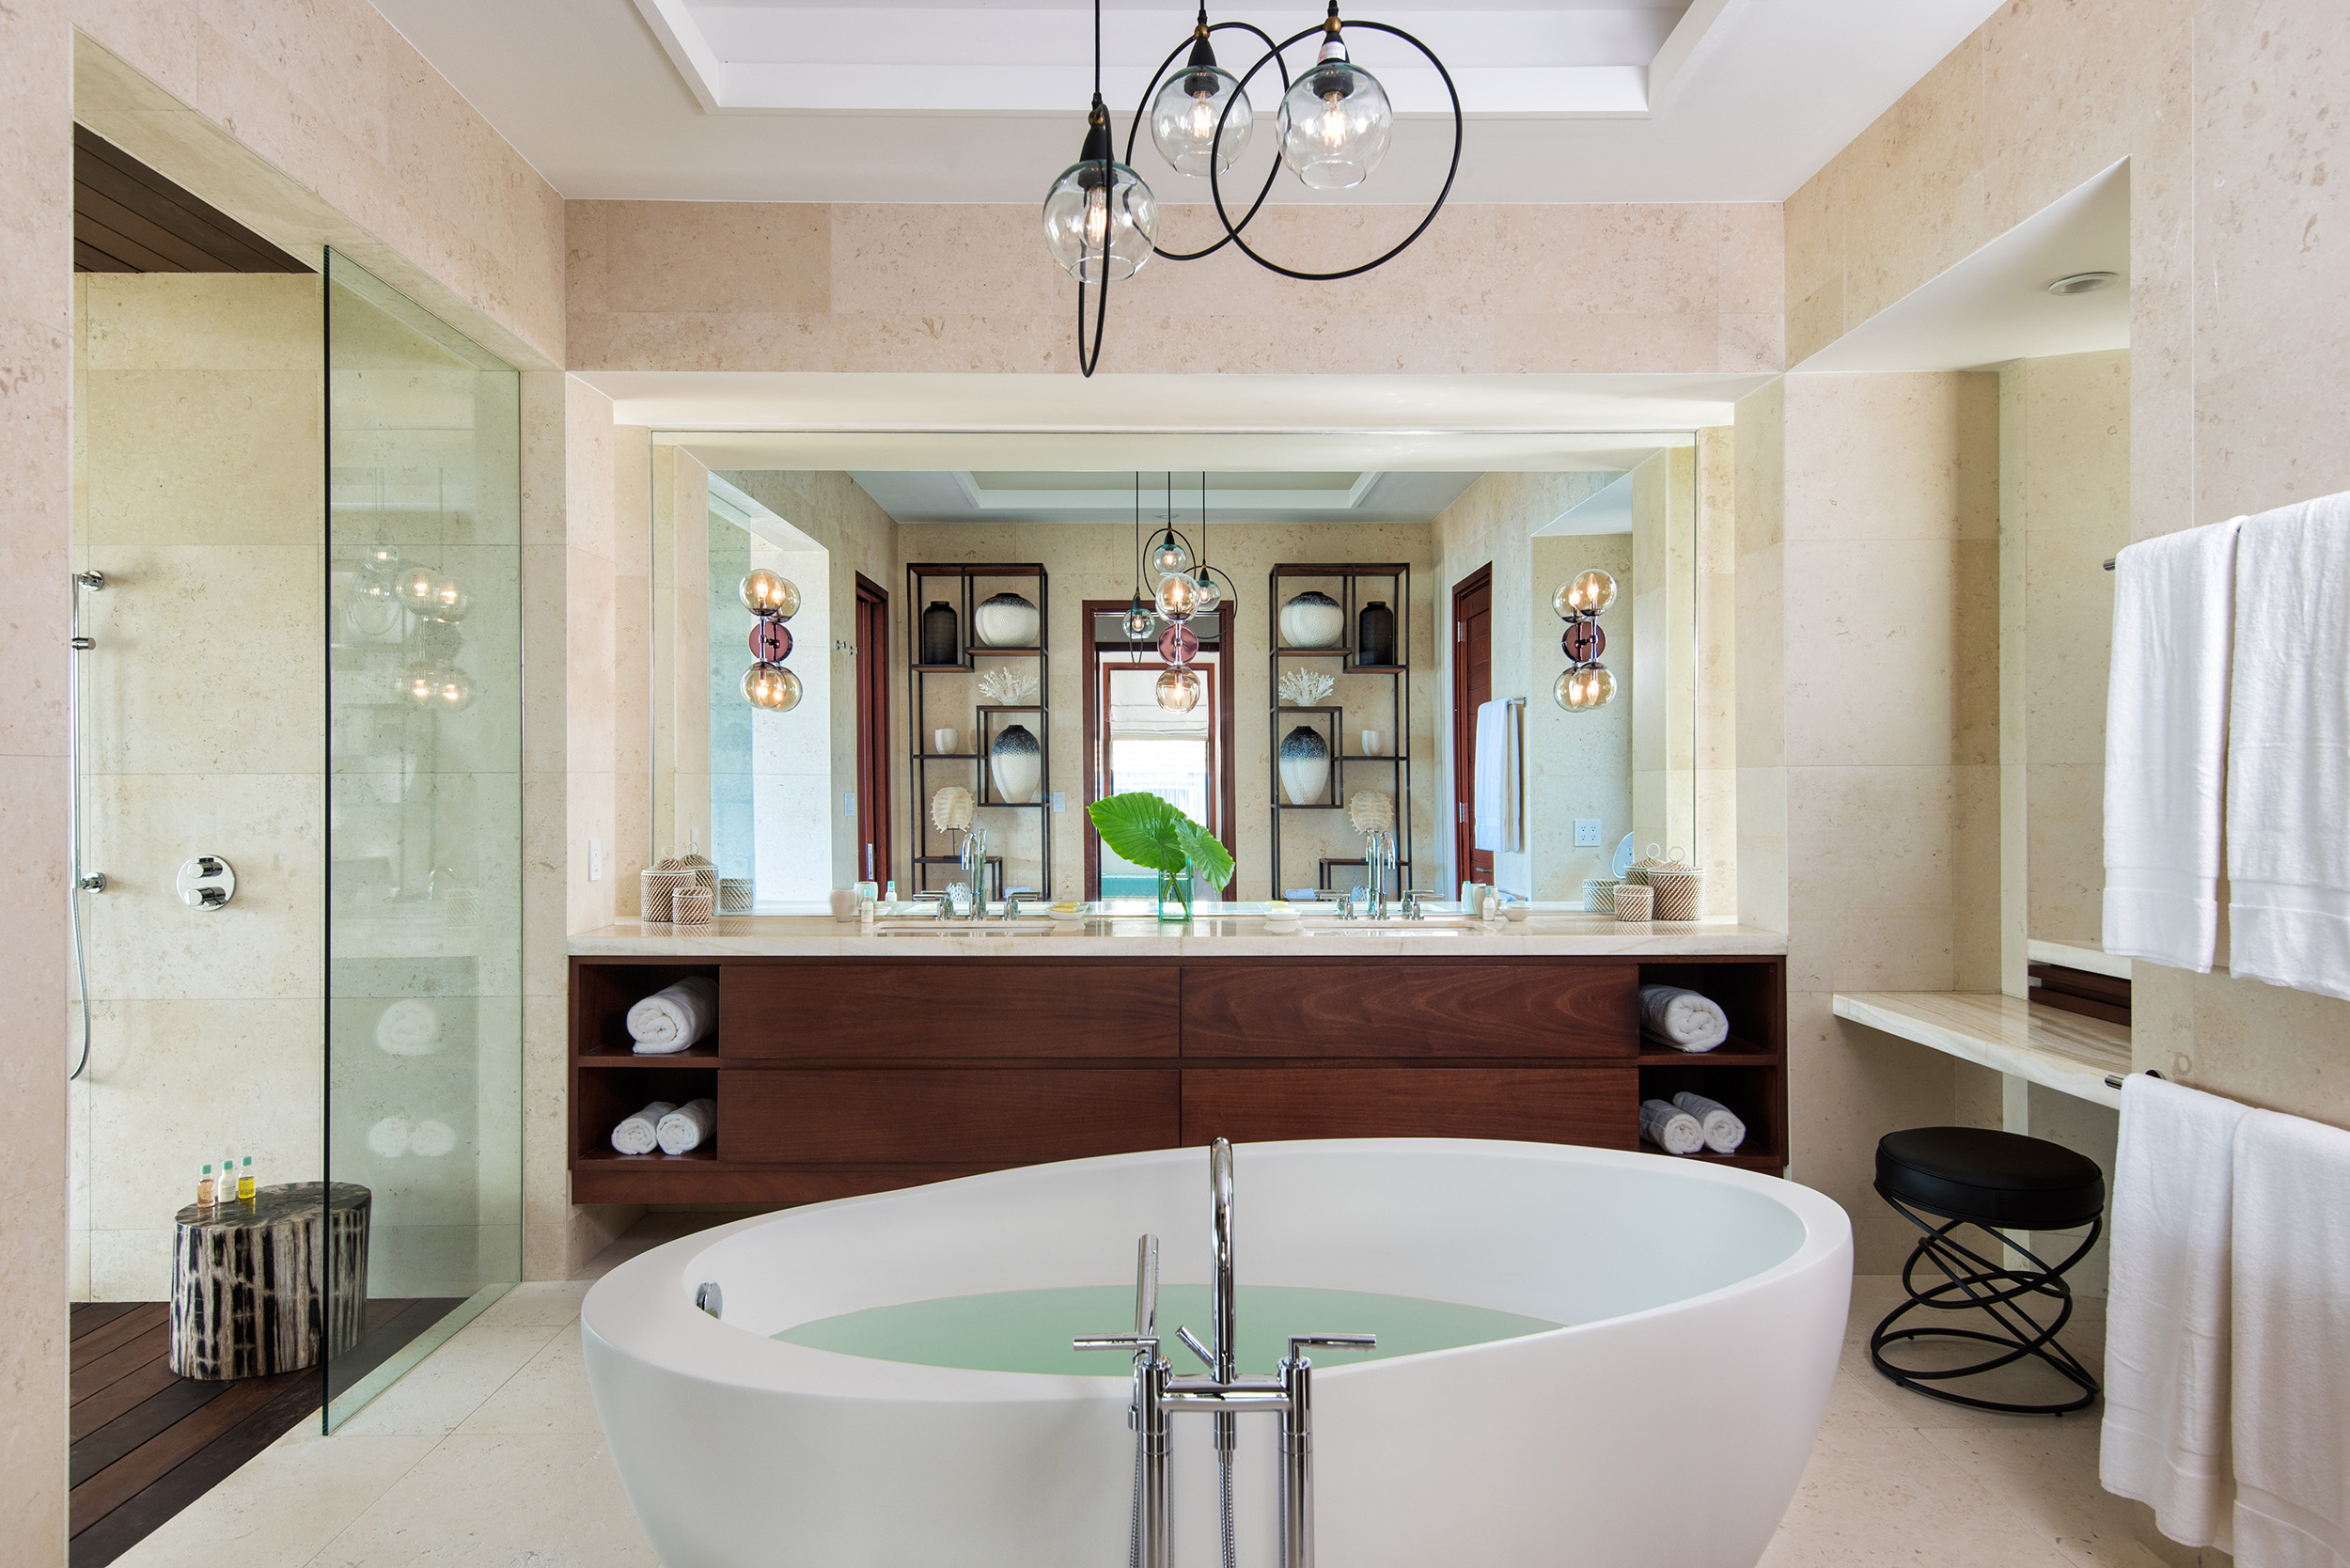 Hawksbill - view of one of the bathrooms, showing the vanity, mirror and bath tub